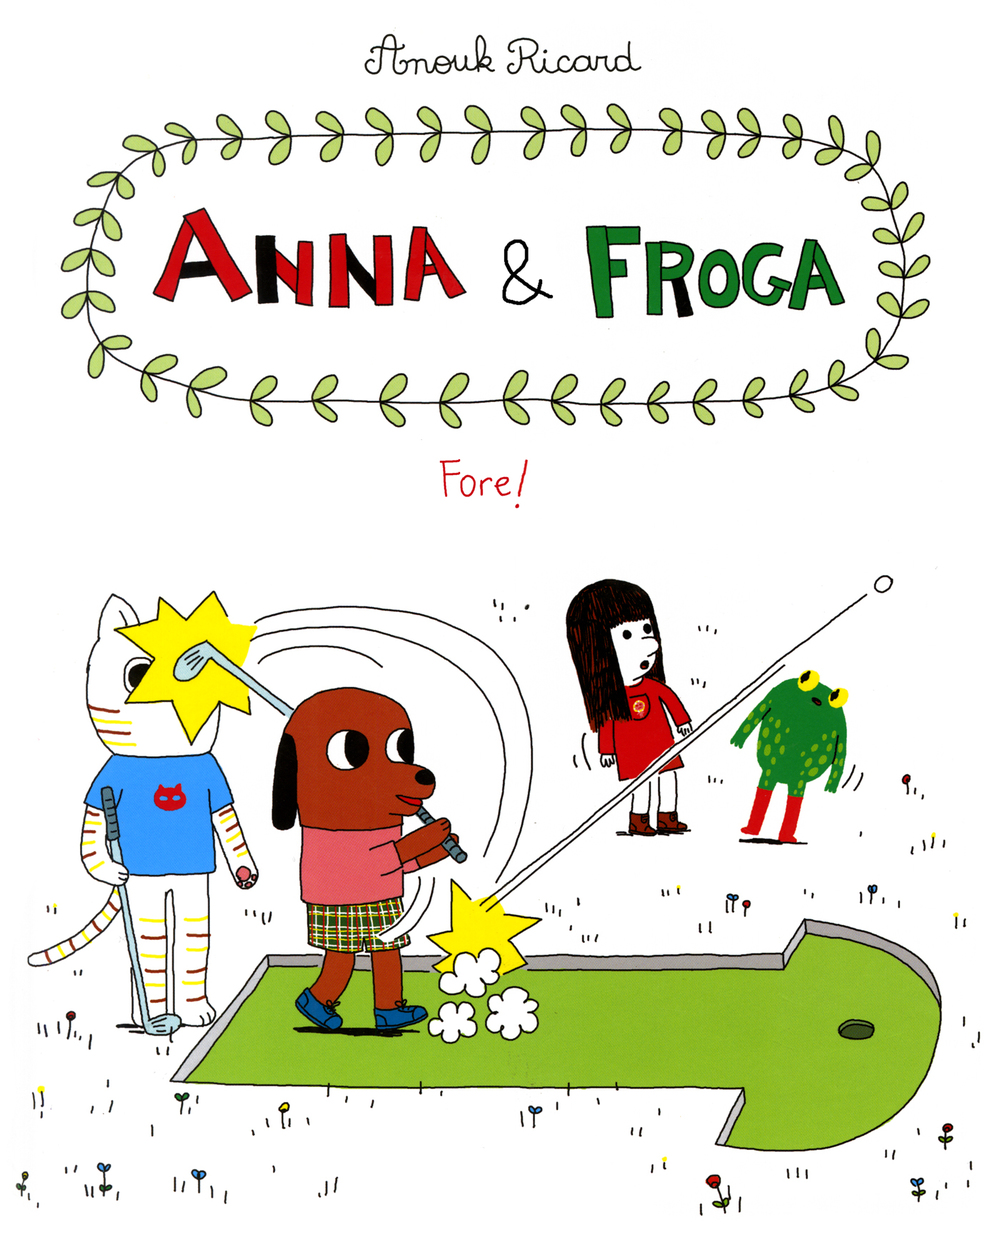 Anna & Froga  - Fore by Anouk Ricard (Drawn & Quarterly) We are HUGE fans of this bunch of unusual pals who always get up to great mischief. This is the latest instalment in a series that manages to capture the joys and pains of being a kid like no other.  The funniest and 'fun-est' book of the year.  Get yours here.